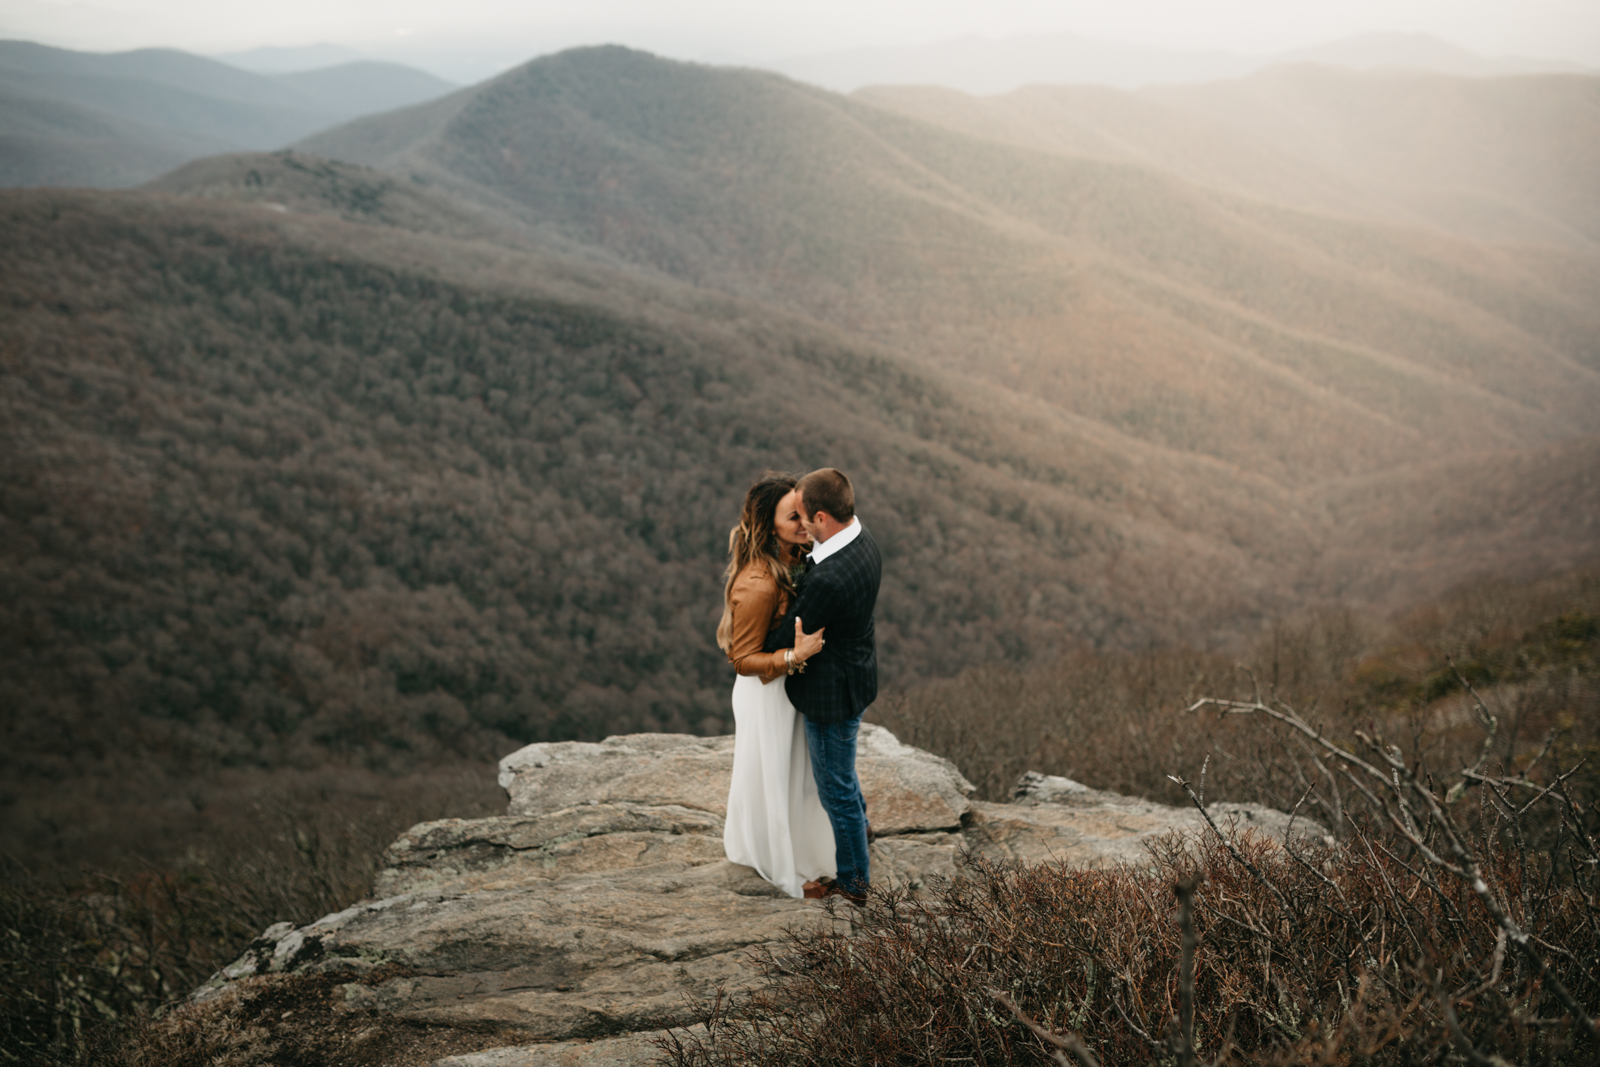 Newly married bride and groom on the rock overlook on Craggy mountain in Asheville, North Carolina.